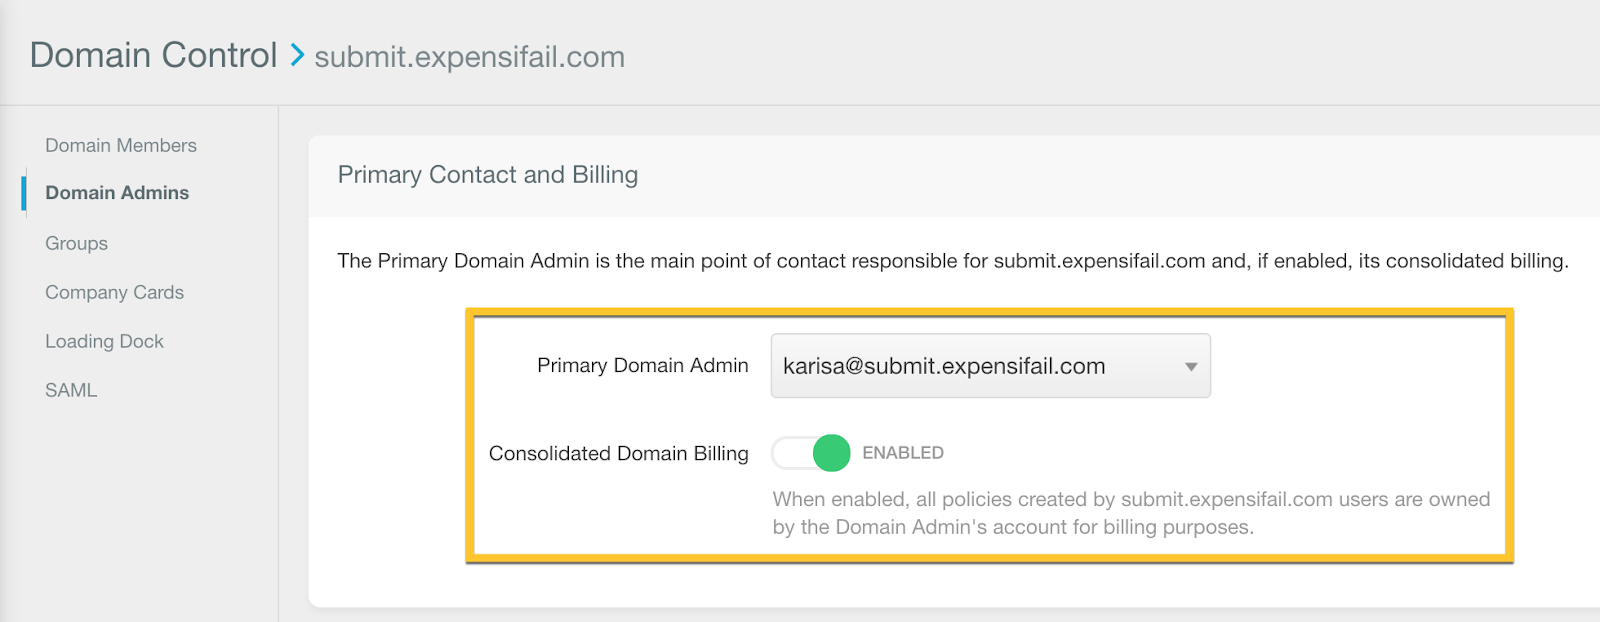 Image of the Domain Admins page with consolidated domain billing enabled